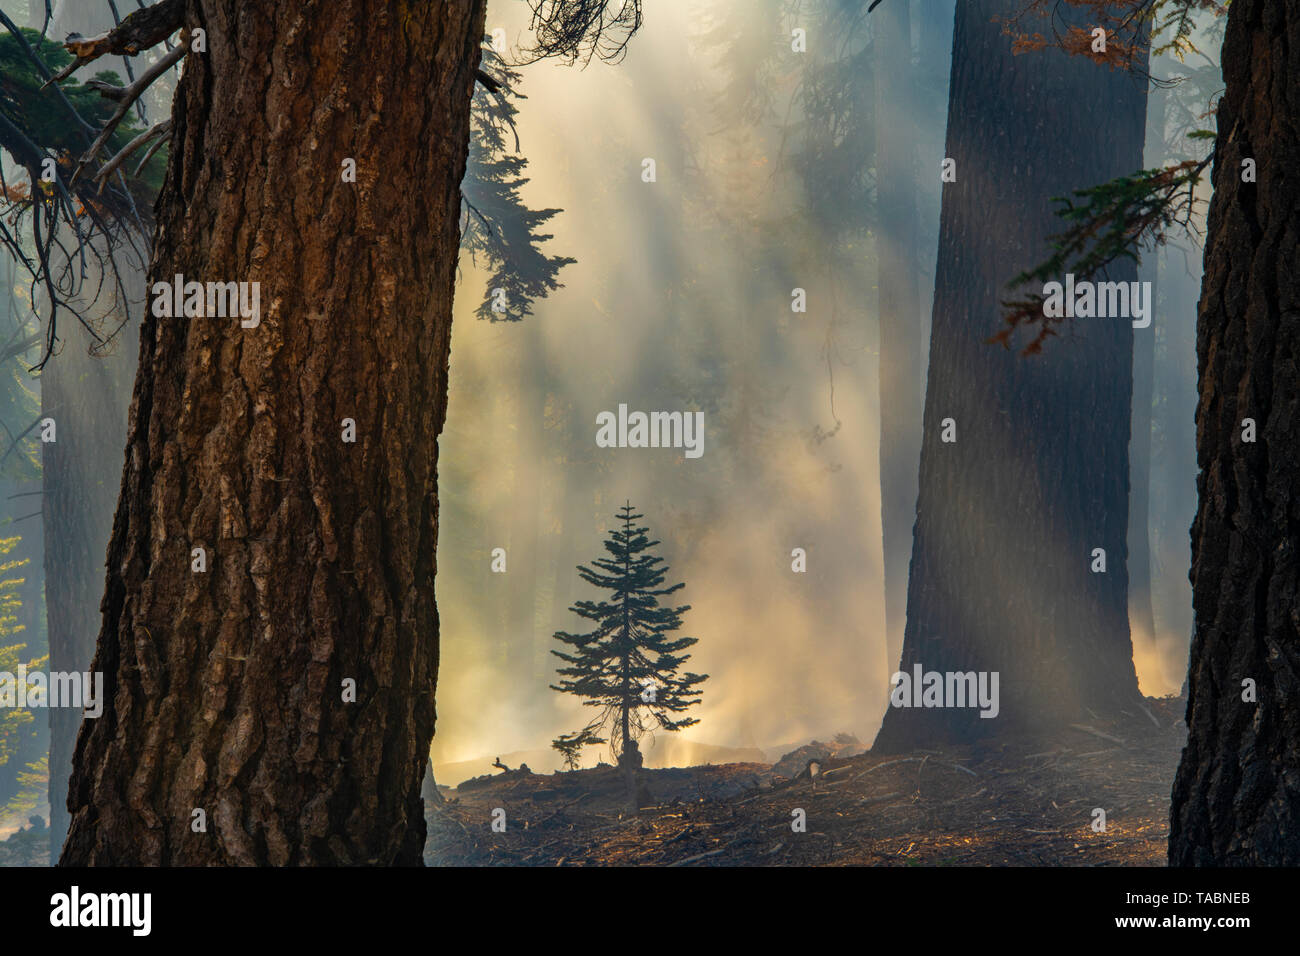 Aftermath of forest fire, Yosemite National Park, California, USA, by Bill Lea/Dembinsky Photo Assoc - Stock Image